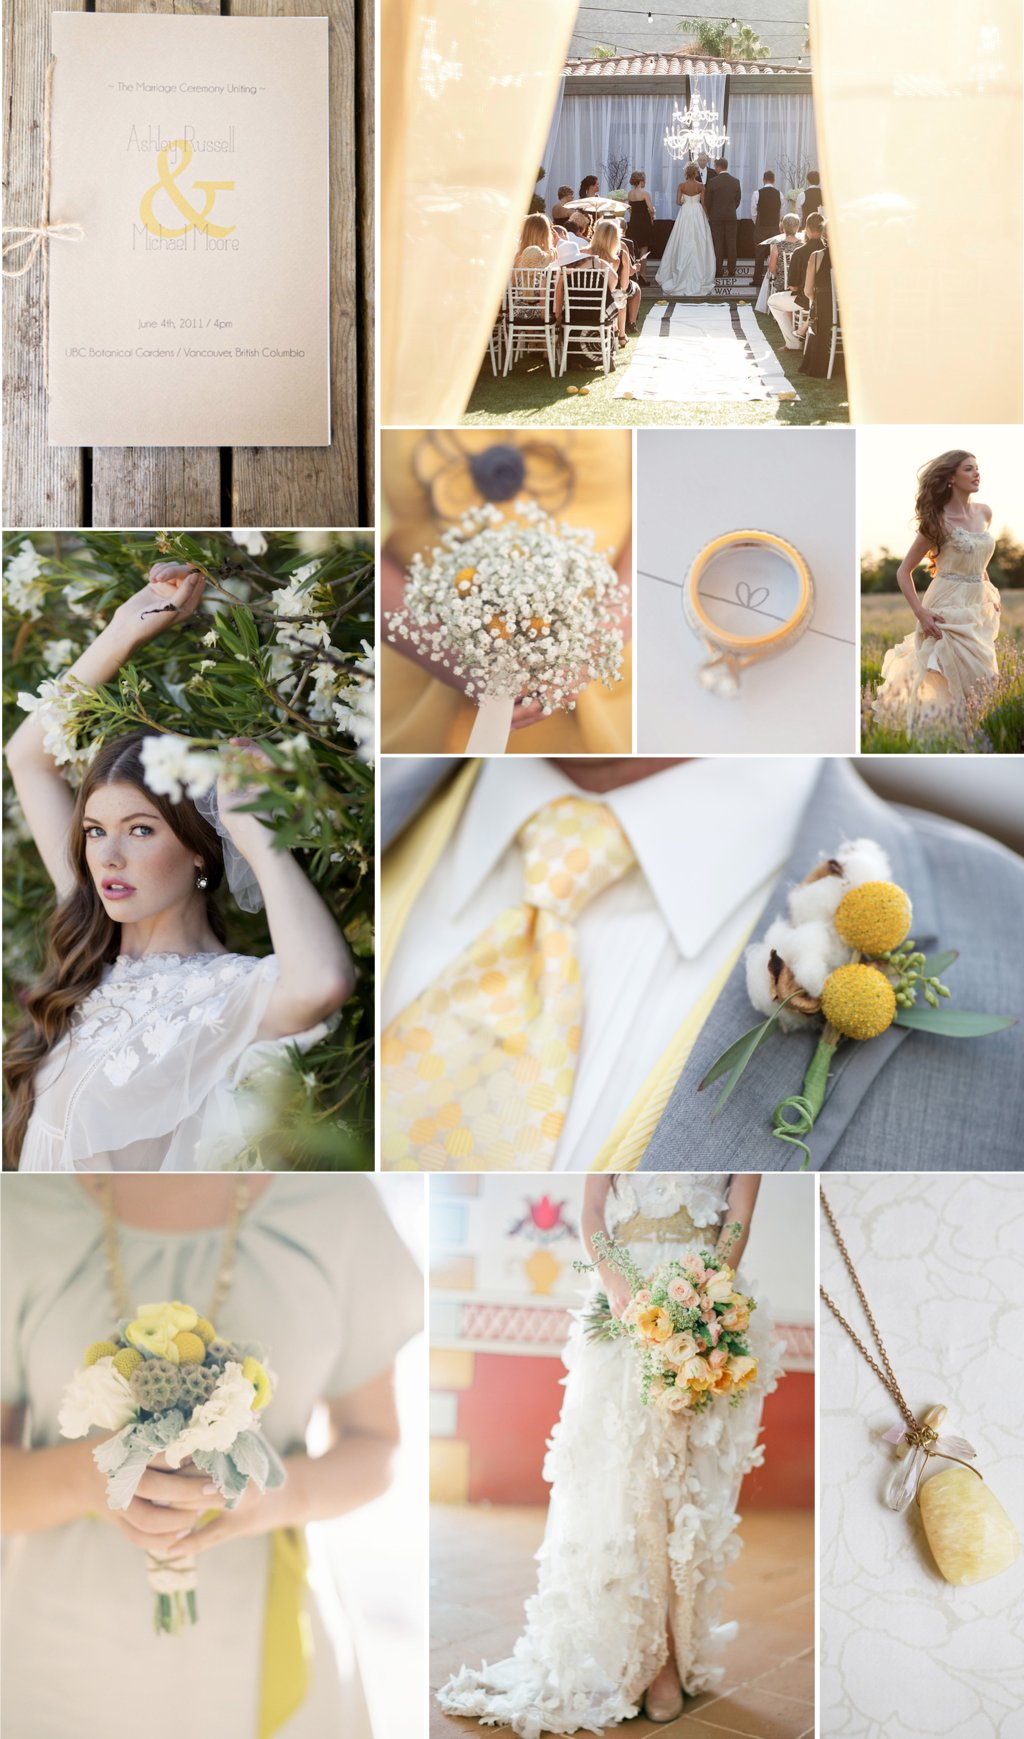 Yelow-beige-taupe-wedding-color-inspiration-bridal-bouquet-bout-decor-details-3.full